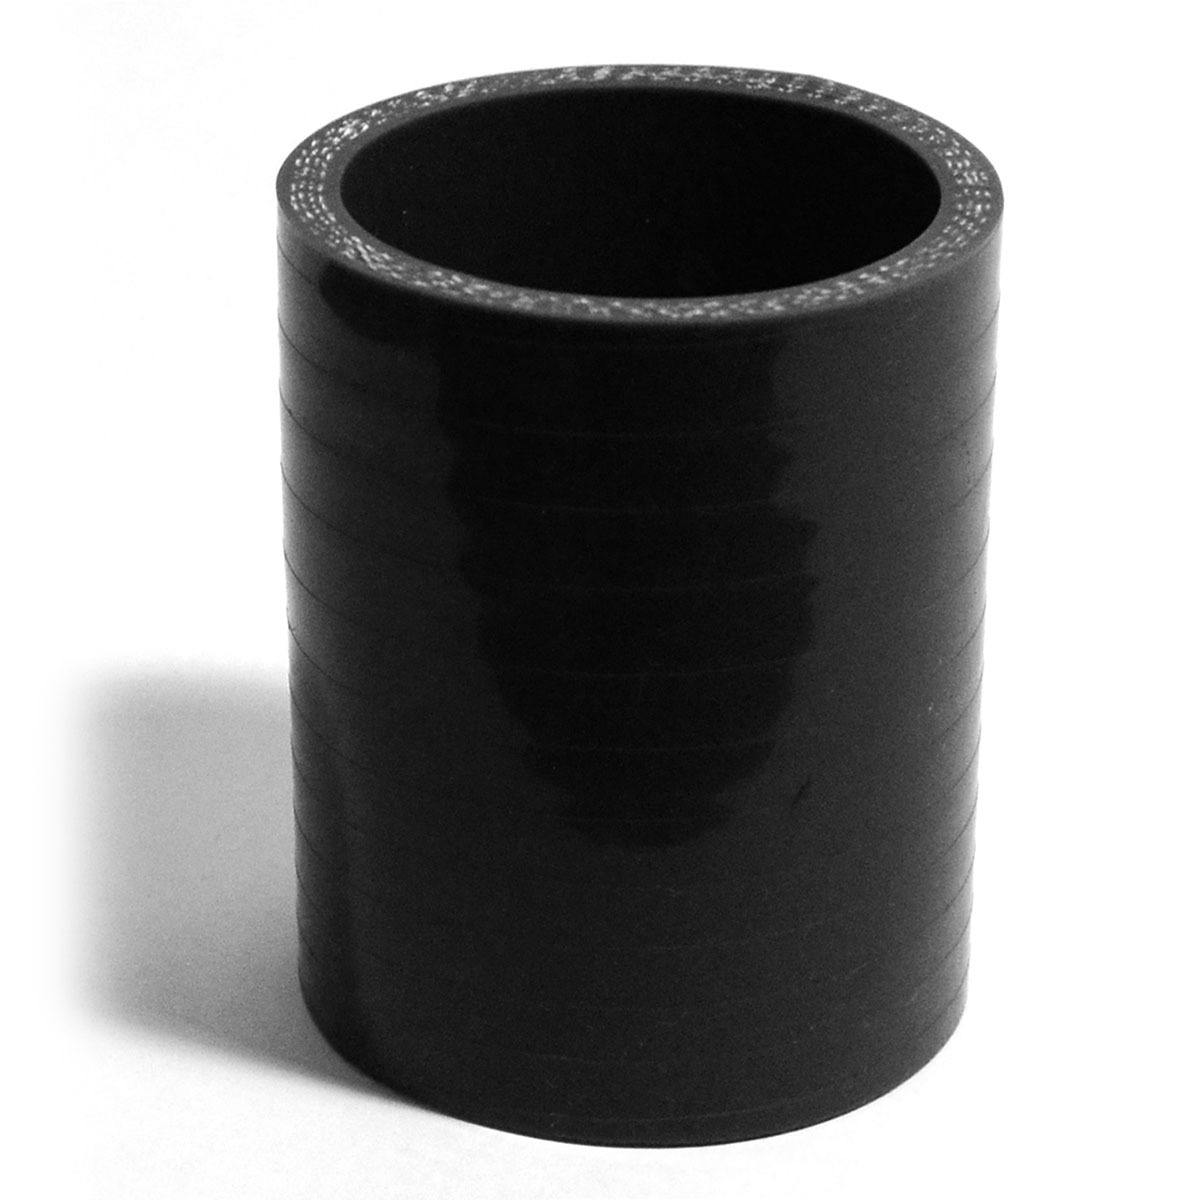 Straight 4 Ply Silicone Hose 45mm x 45mm x 76mm Black